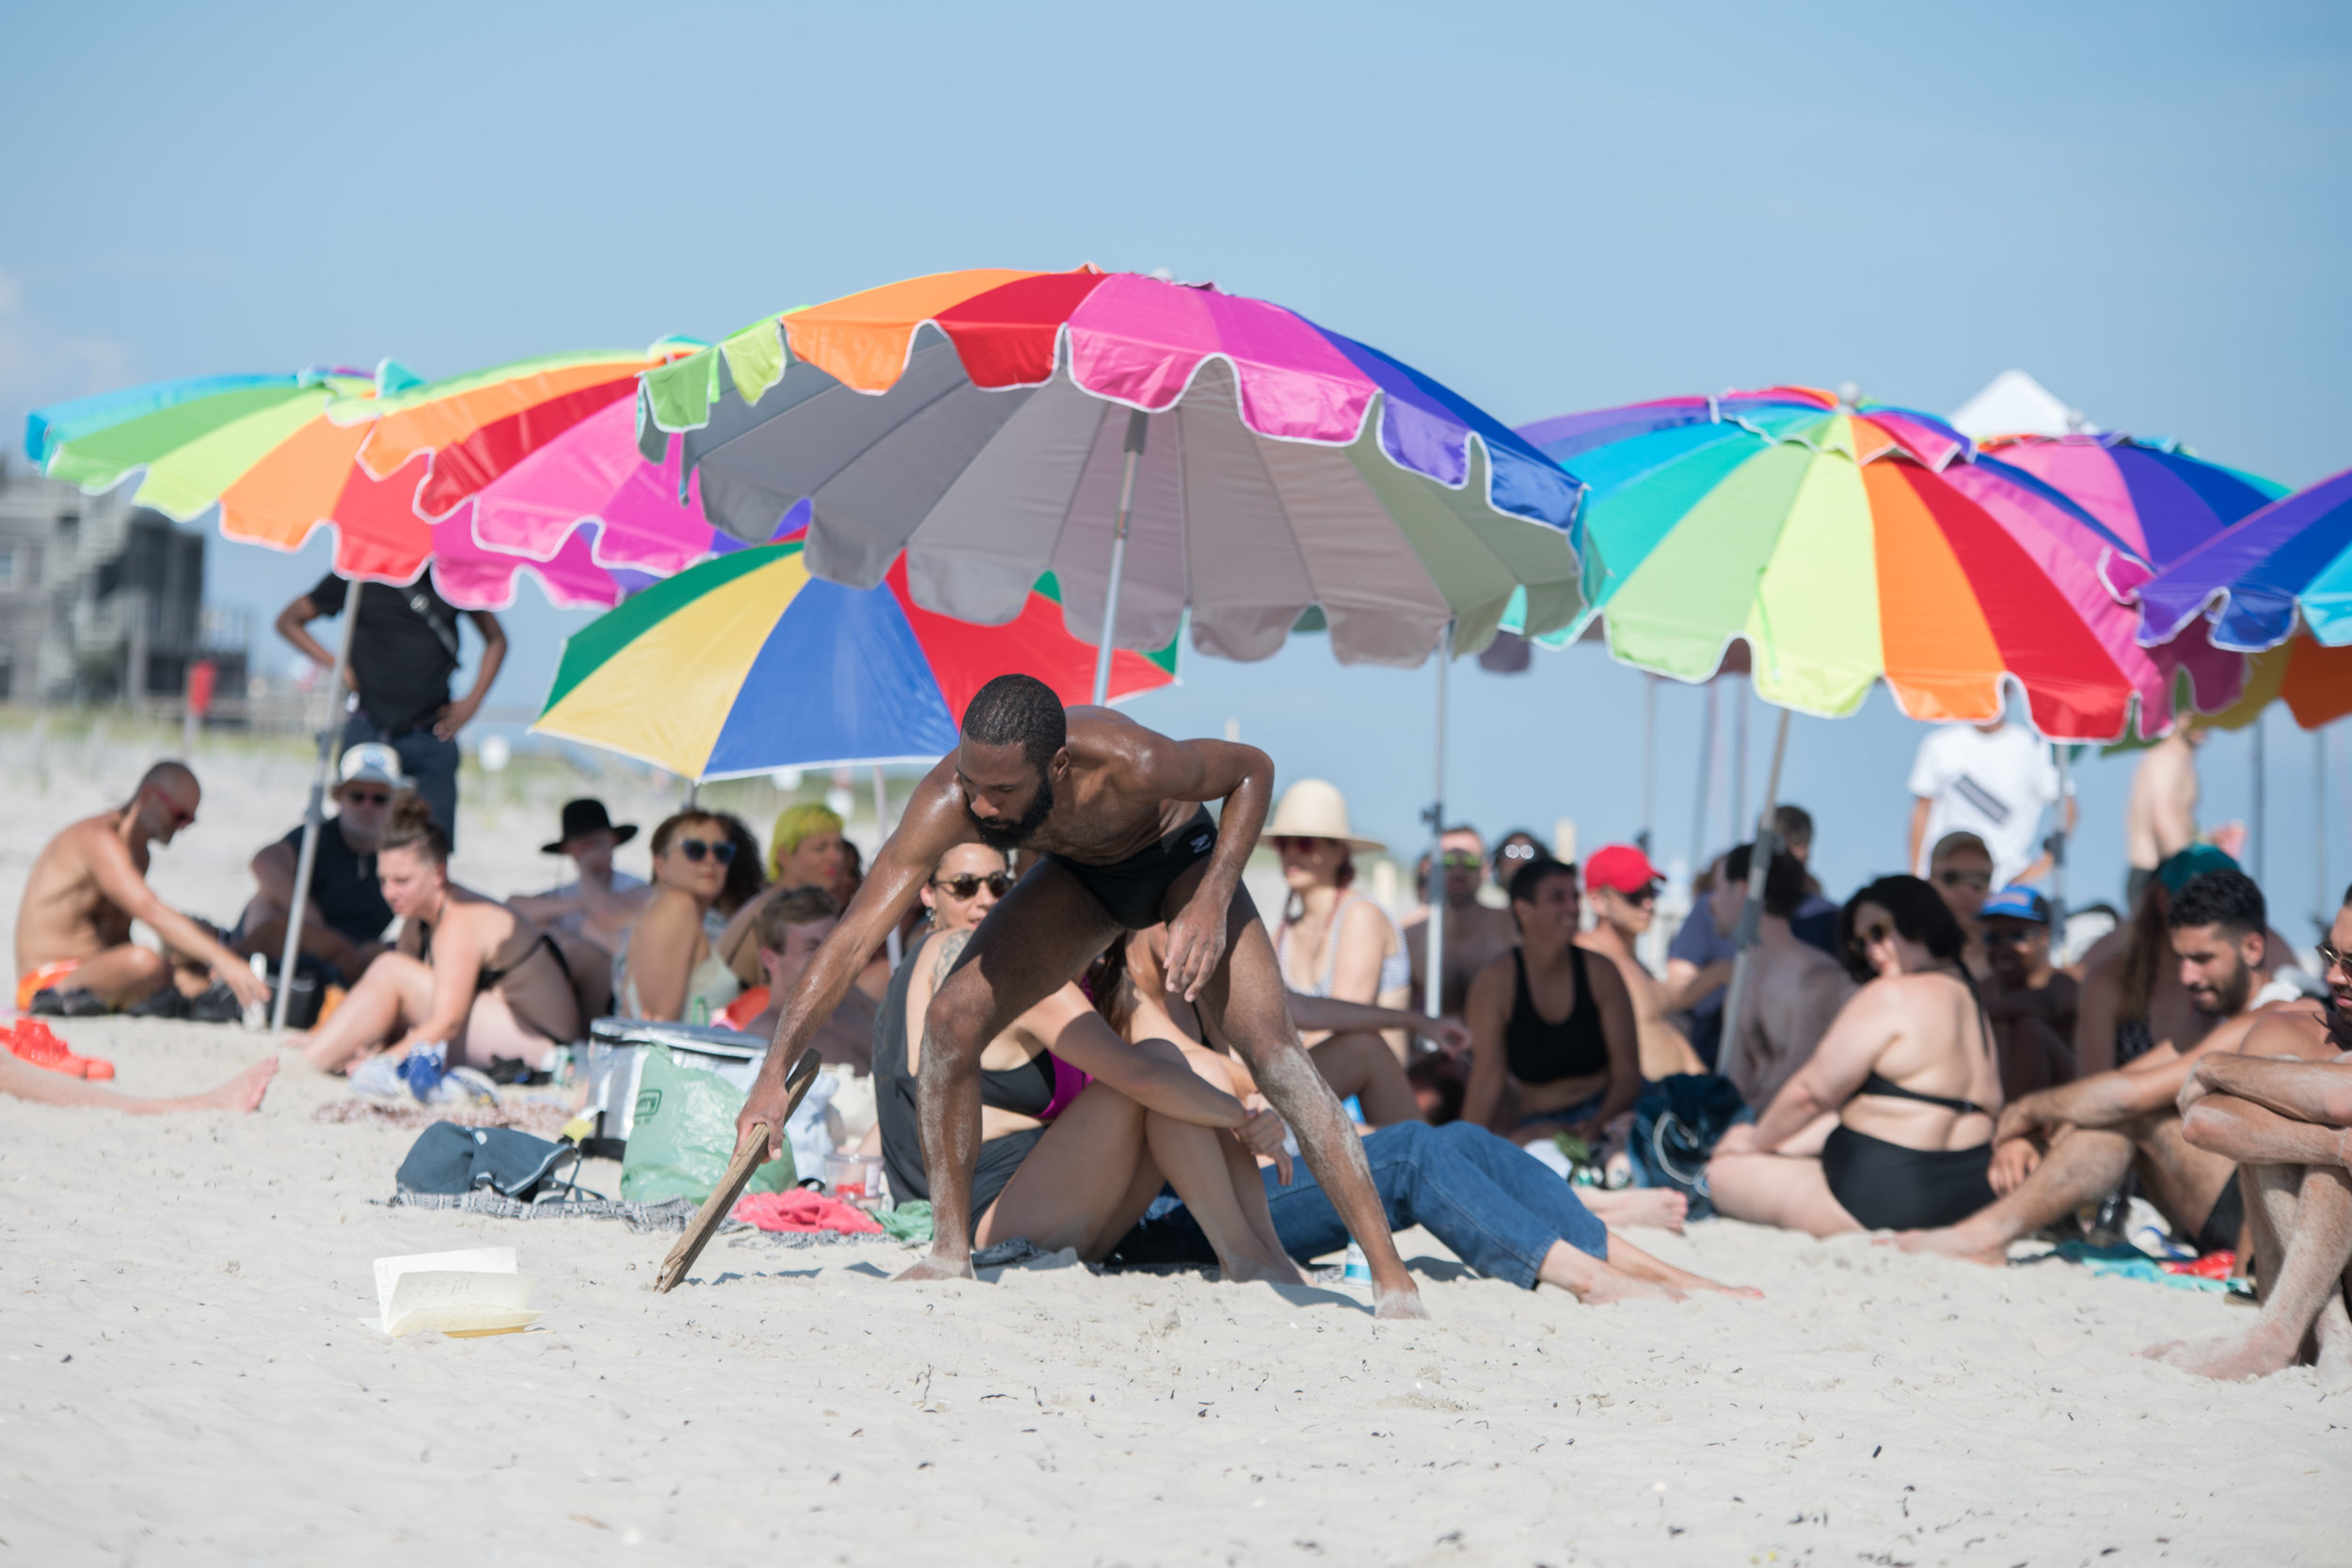 I crouch down and write in the sand with a large wooden stick. The audience sits behind me under an arrangement of colorful beach towels. Photo by Nir Arieli